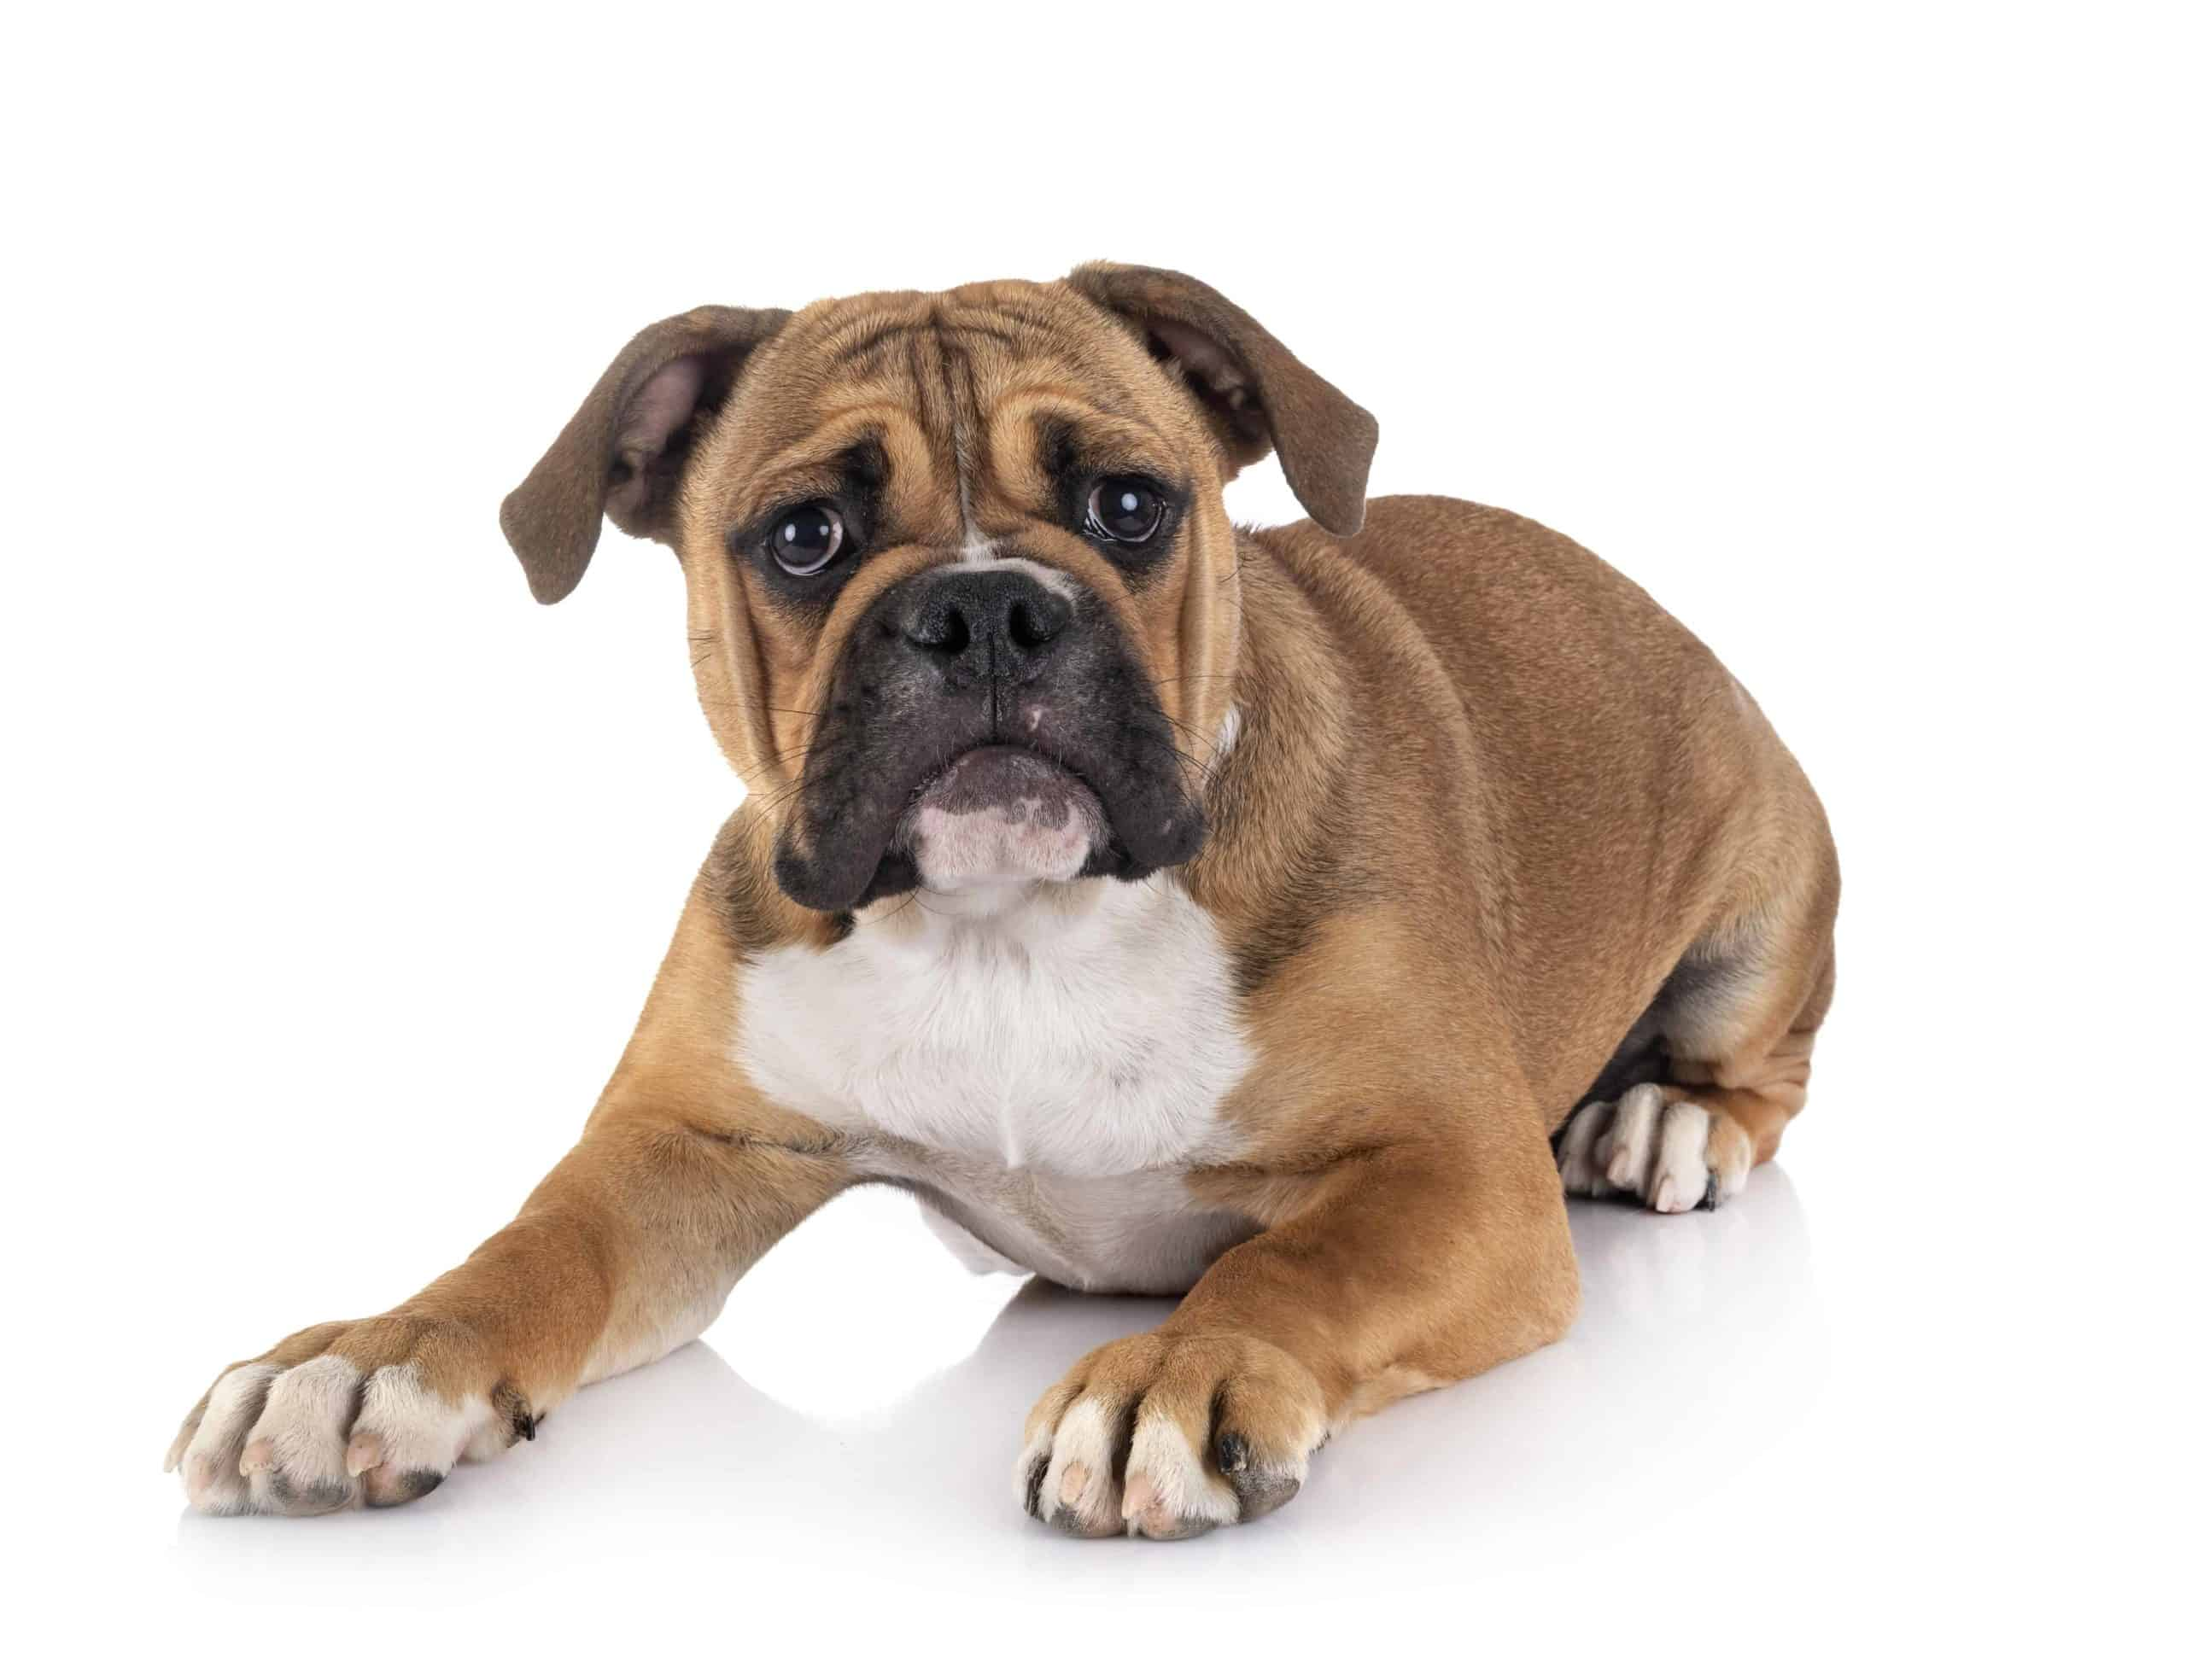 Continental Bulldog on white background. Continental bulldogs, also known as Conti, originated in Switzerland. The dogs are healthier and more athletic counterparts of the traditional English bulldog. The Continental Bulldog is one of eight bulldog breeds.